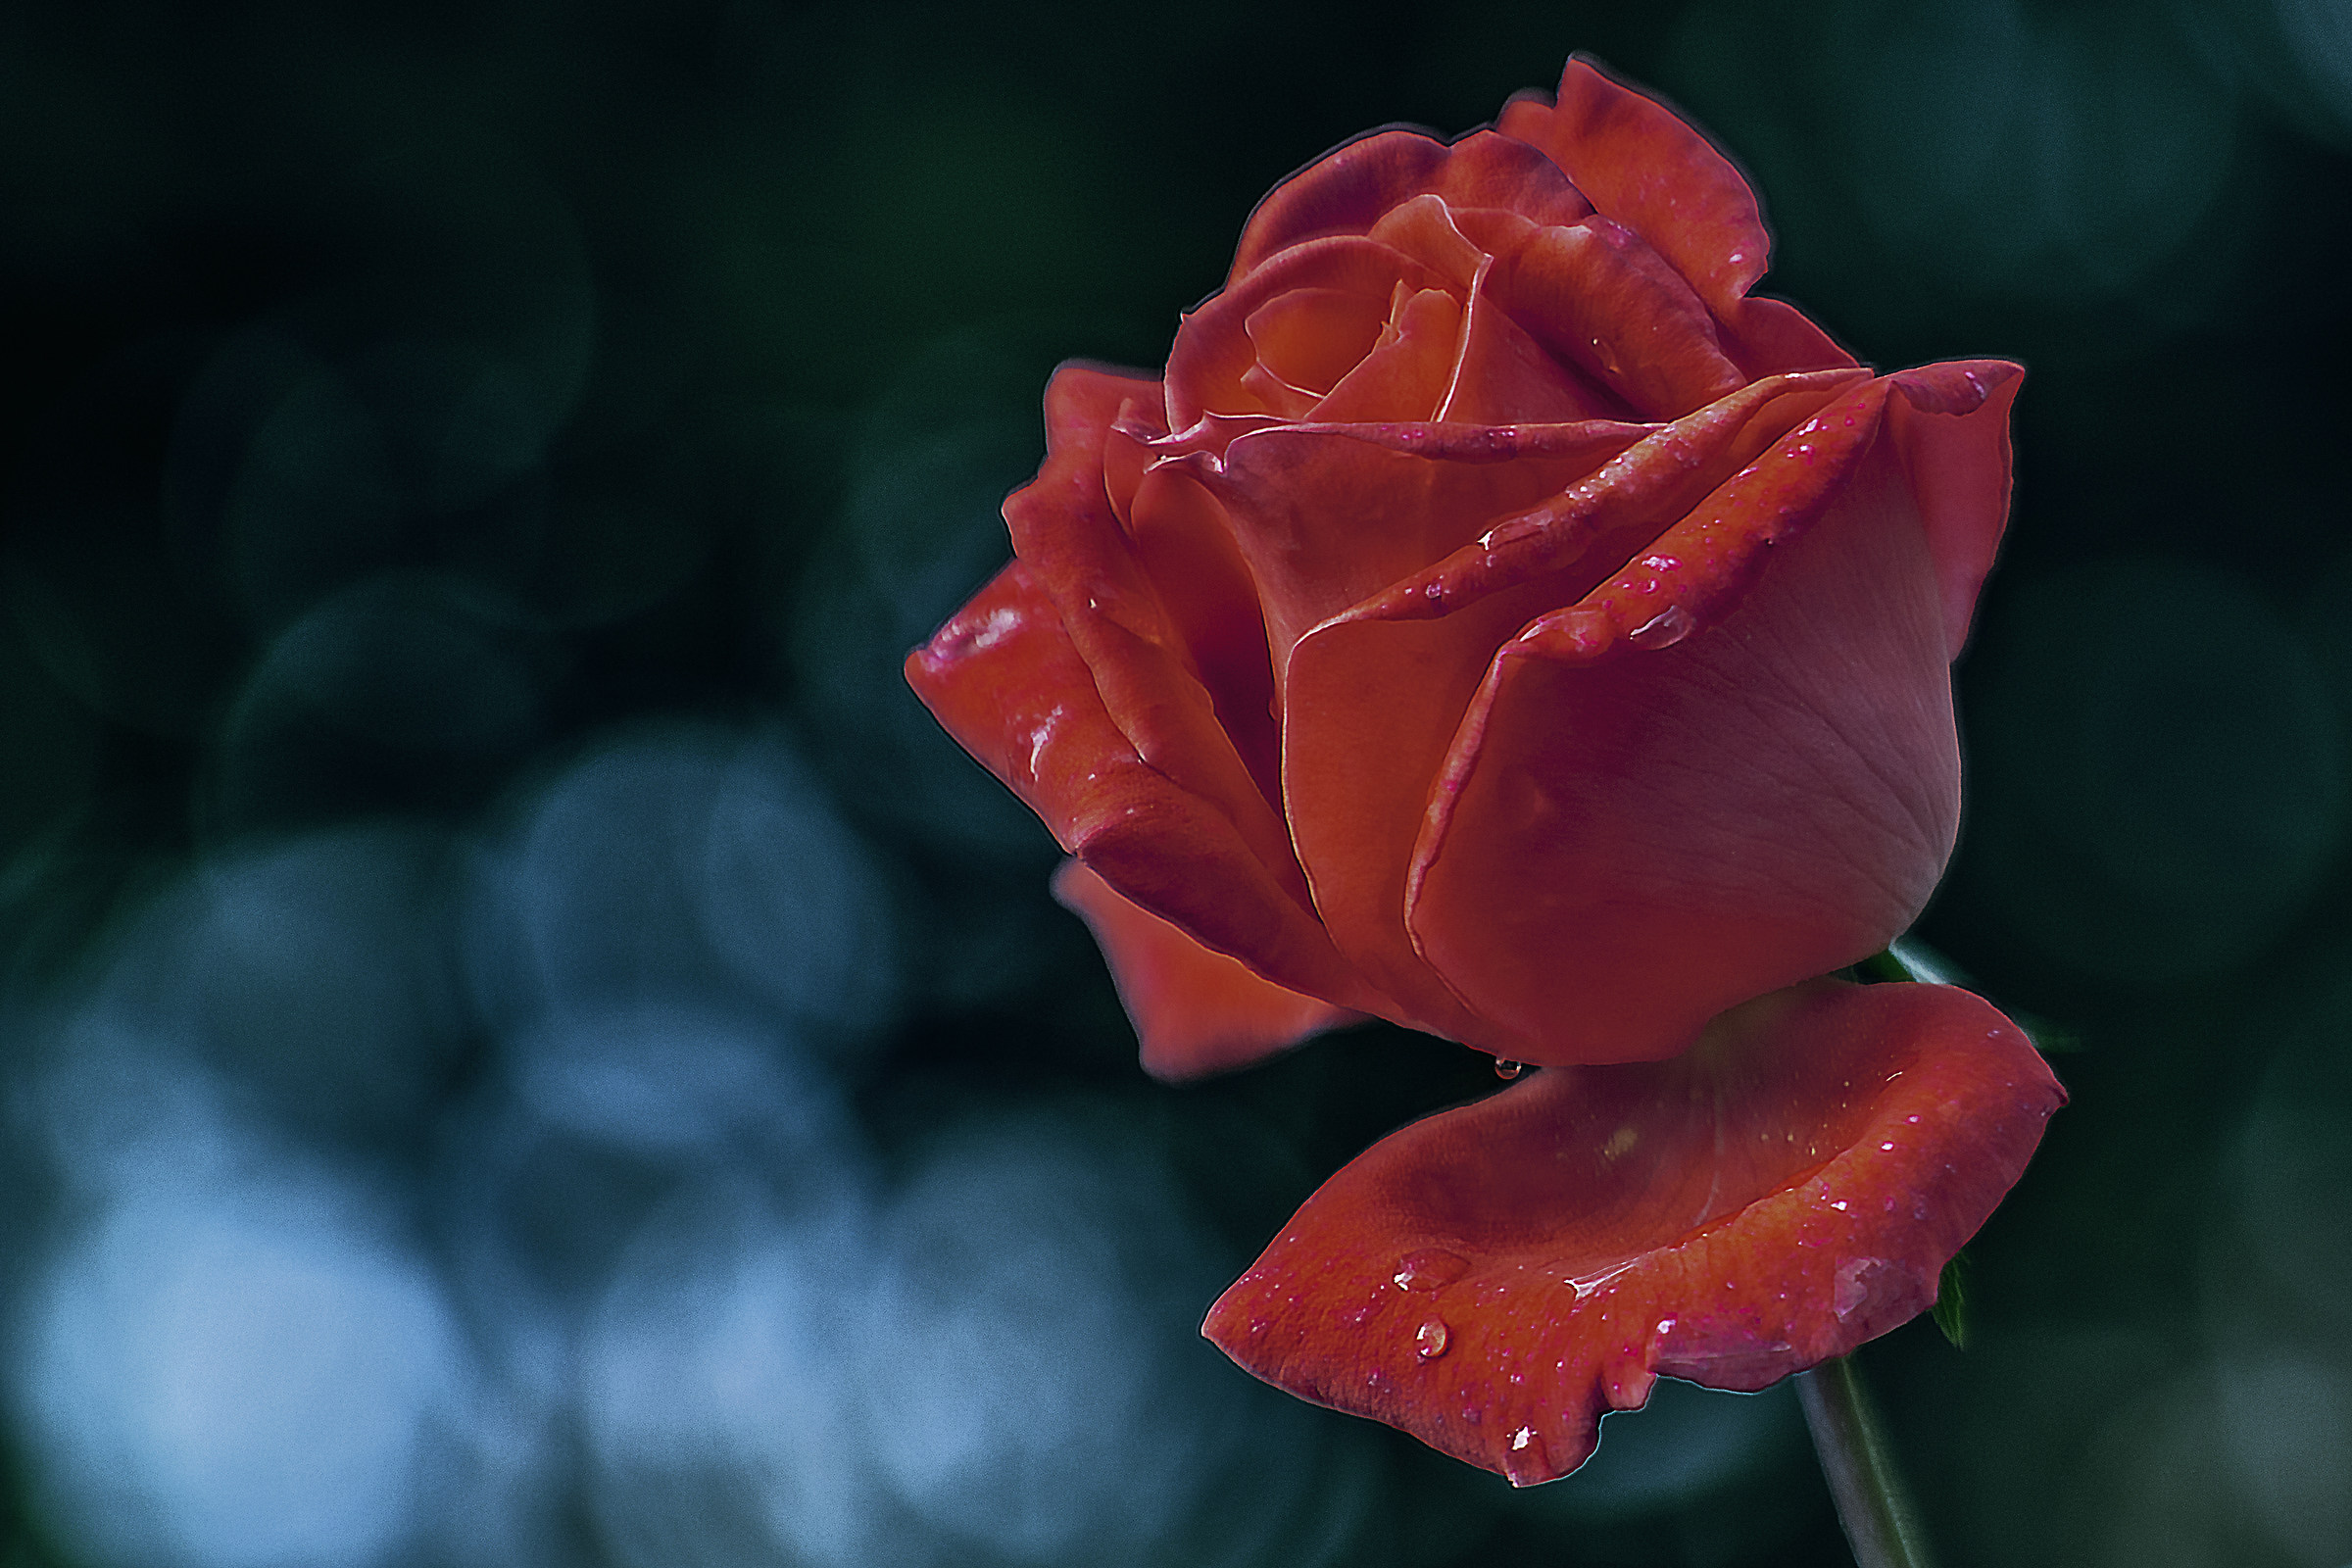 Just a Rose...